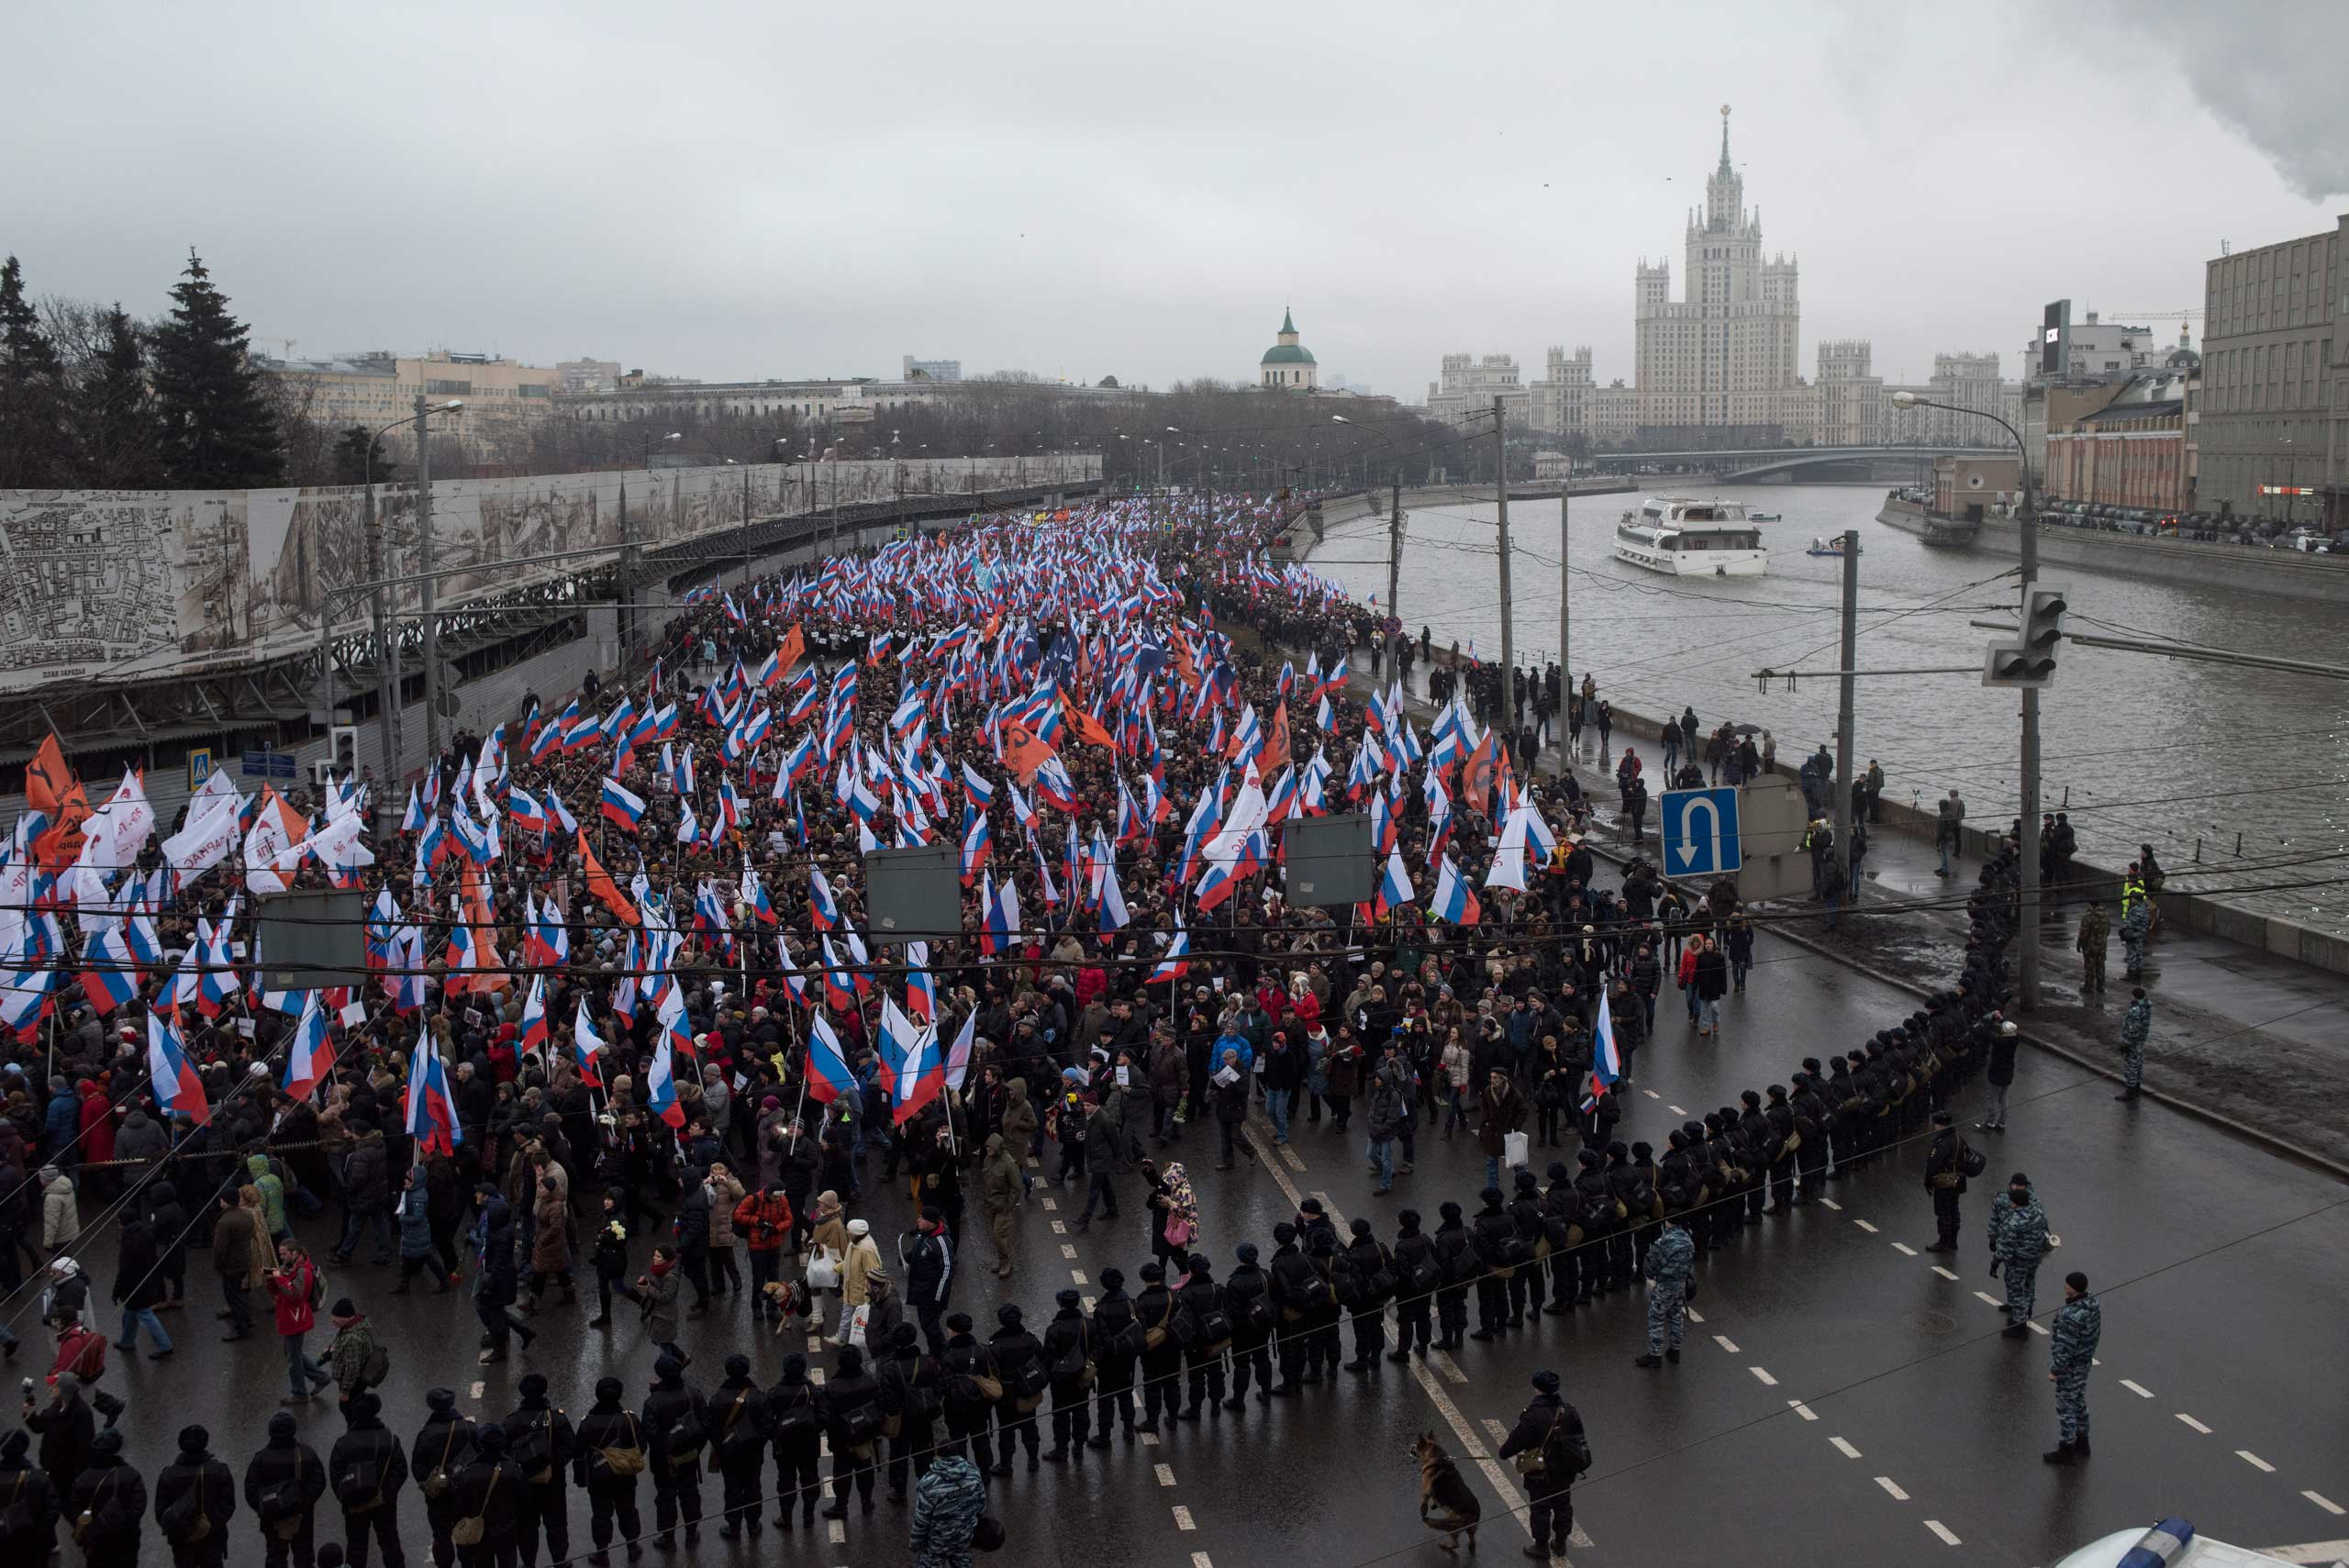 People carry Russian national flags as they march in memory of opposition leader Boris Nemtsov near the Kremlin in Moscow on March 1, 2015.